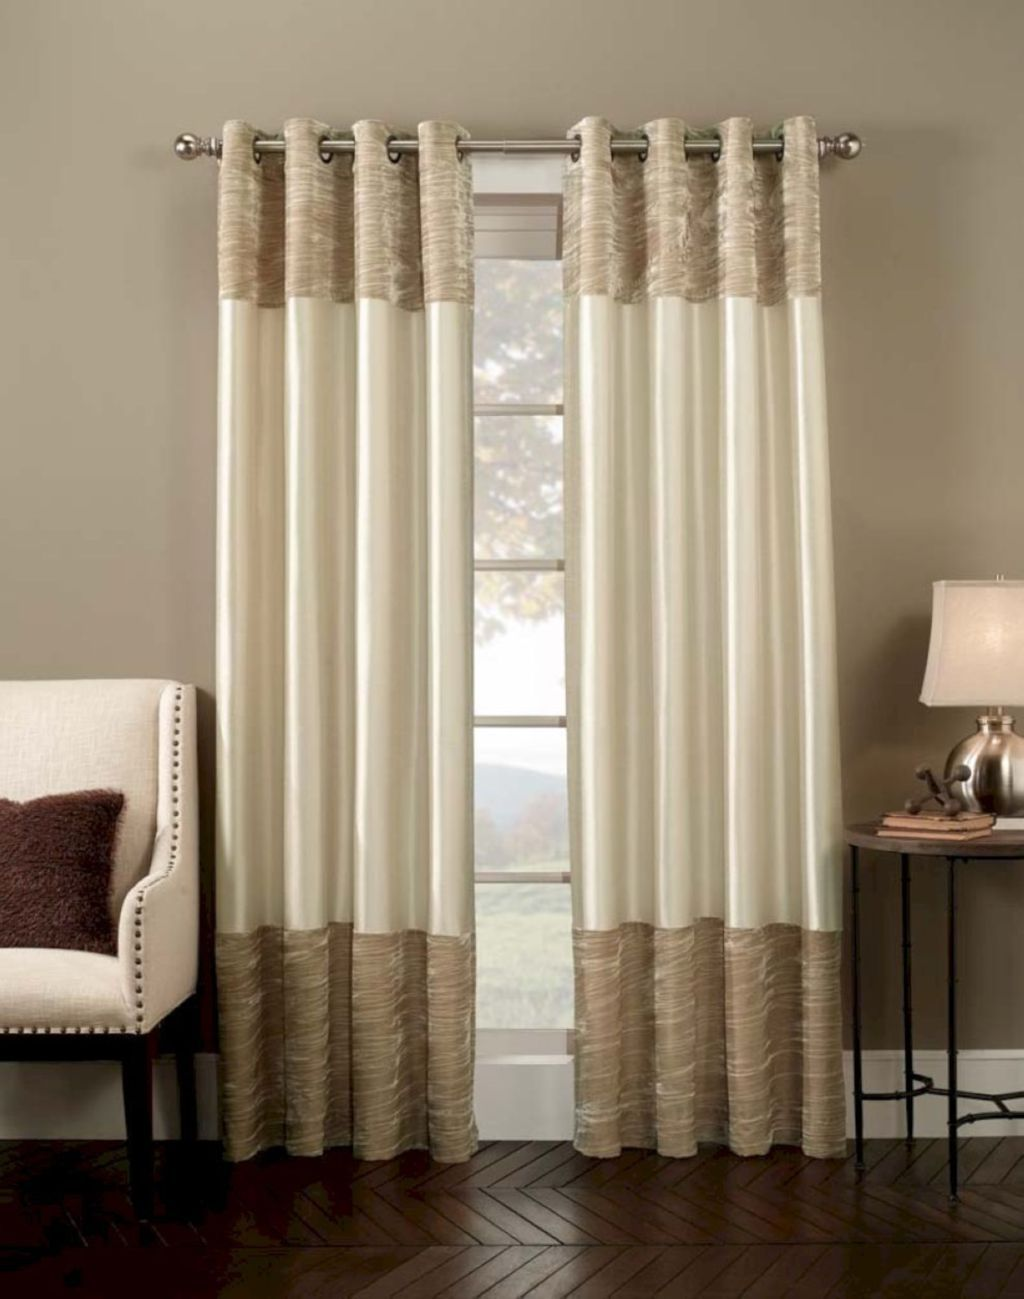 30 Cool Curtain Ideas For Living Room Luxury Curtains Luxury Curtains Living Room Curtains Living Room Modern